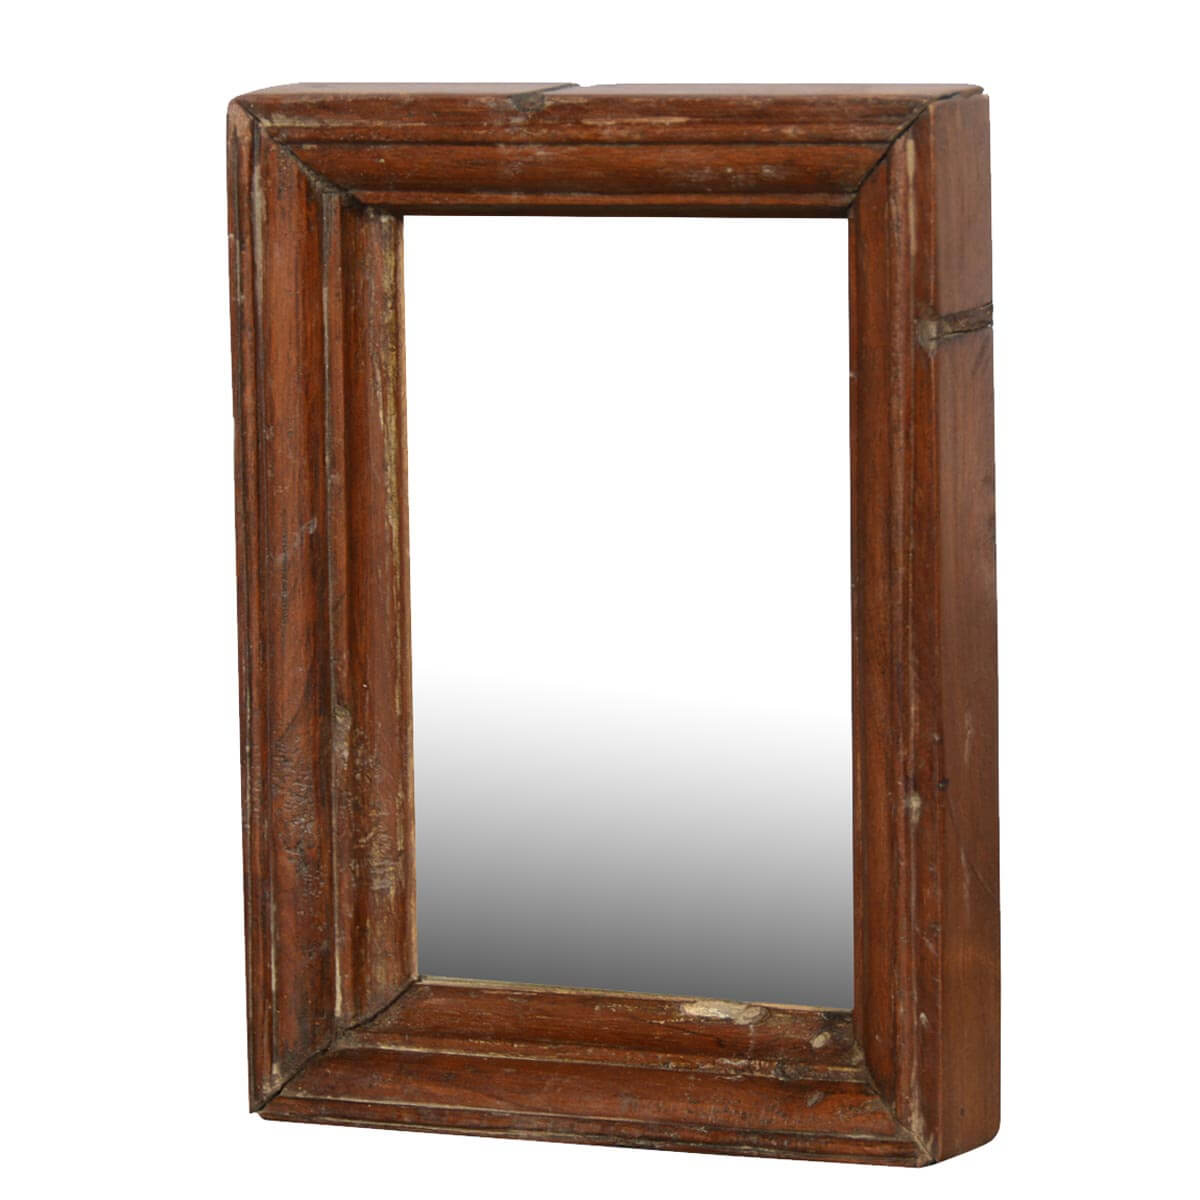 Rustic farmhouse reclaimed wood handmade wall mirror frame